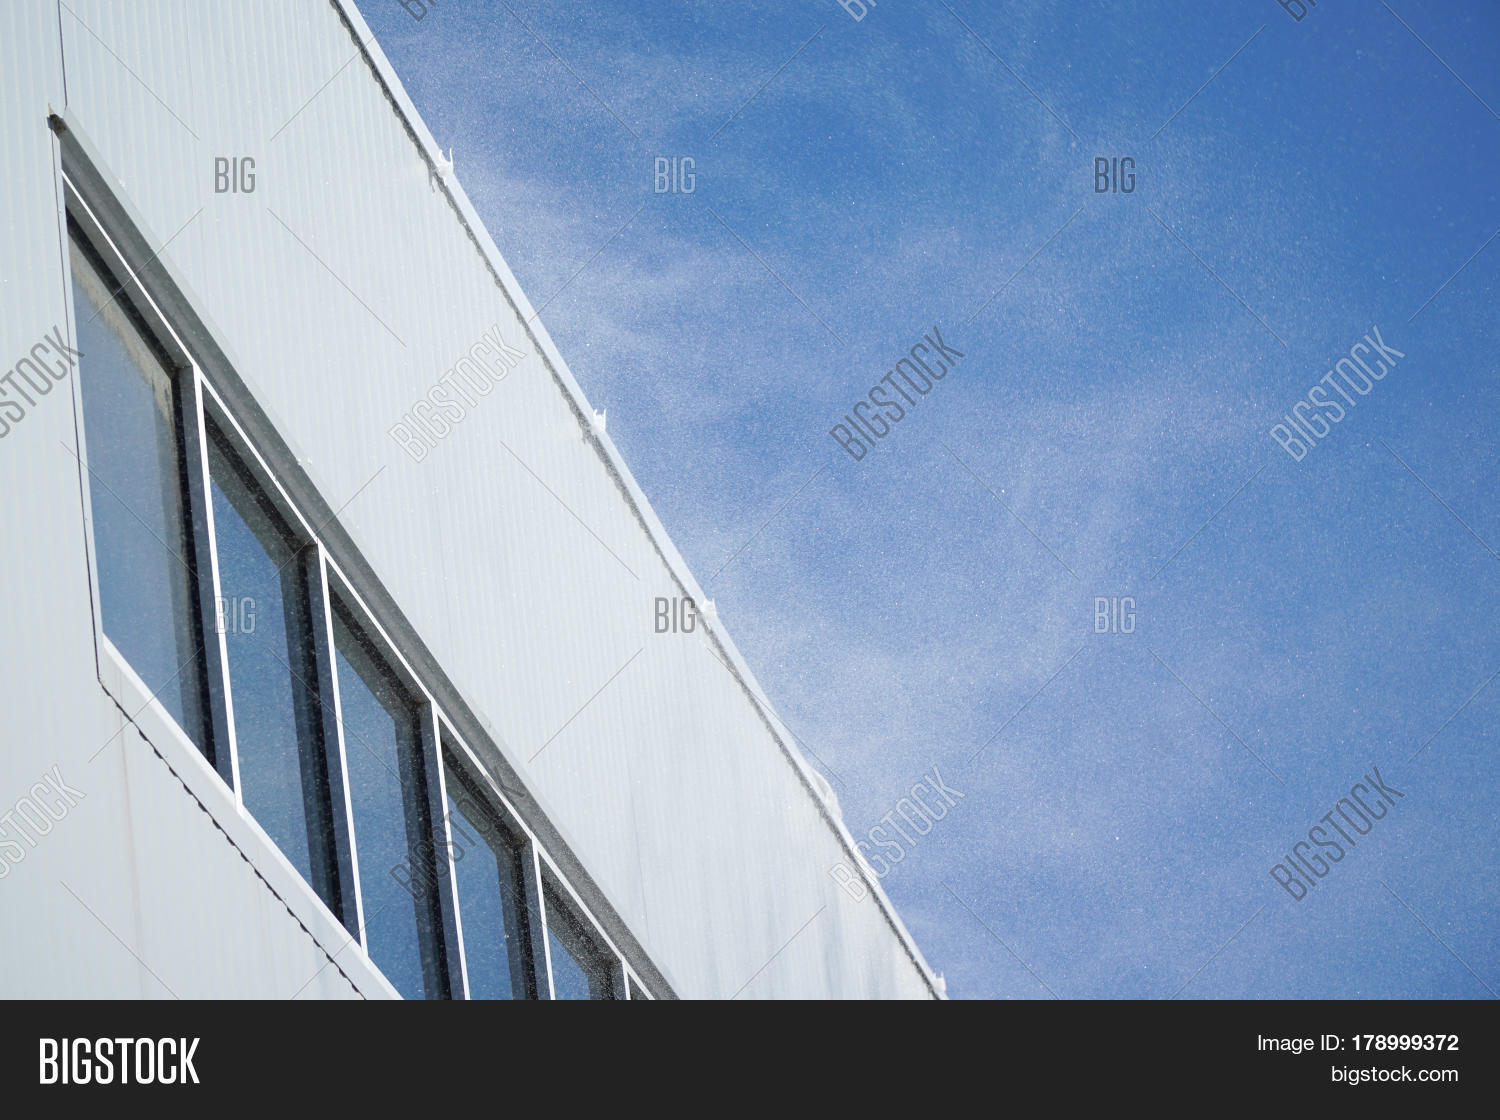 Wind Blowing On Building : Strong wind blowing snow building image photo bigstock